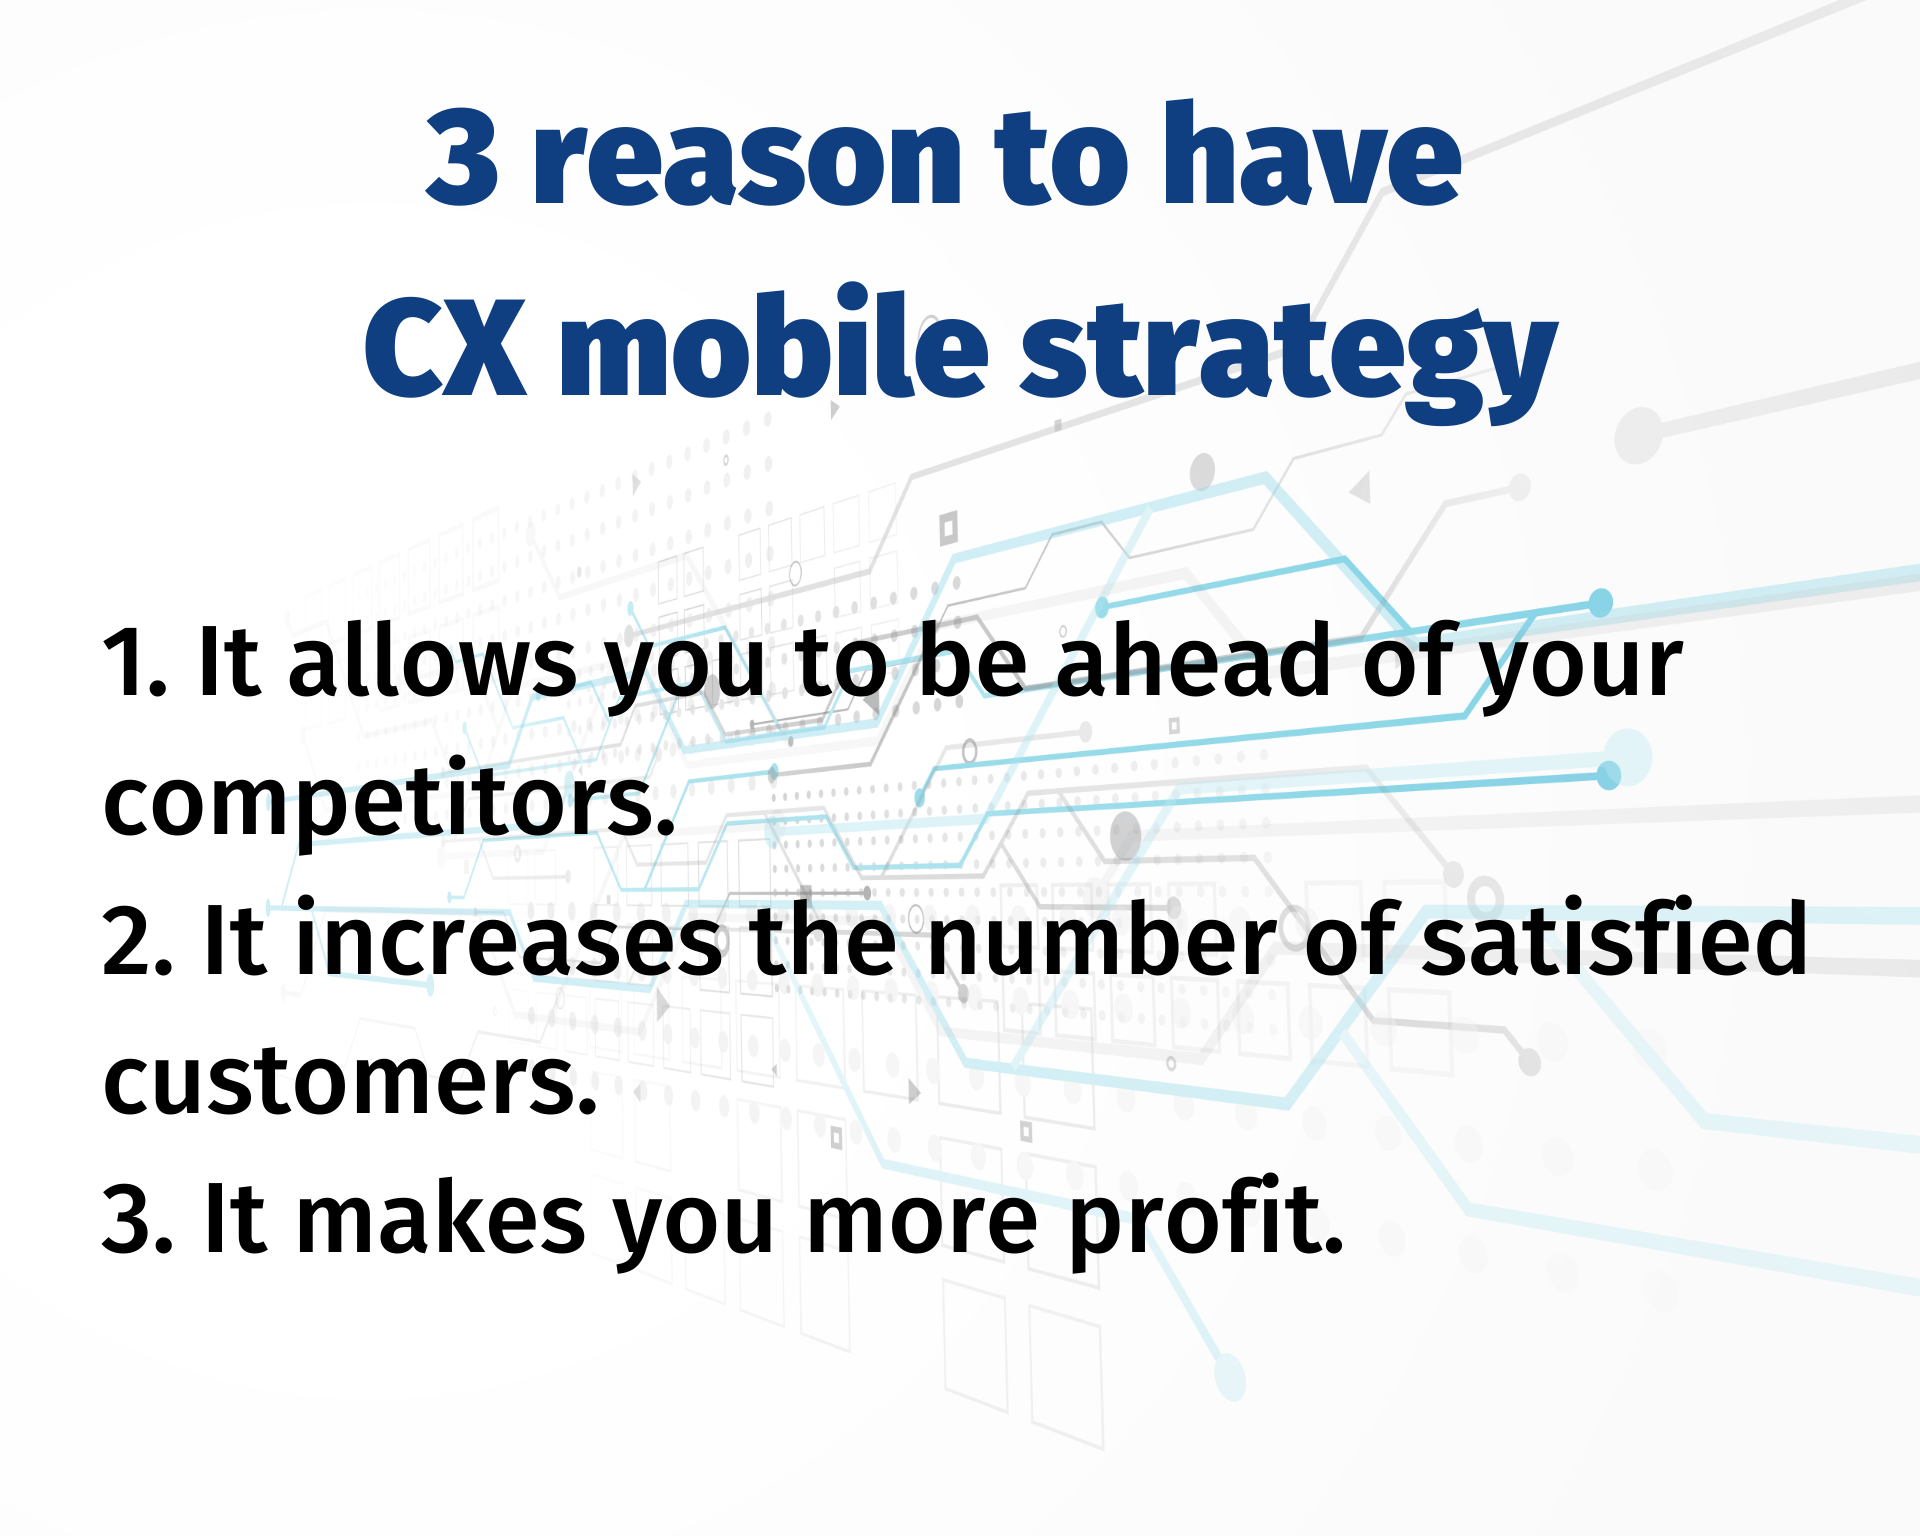 Why should you have an effective CX mobile strateg